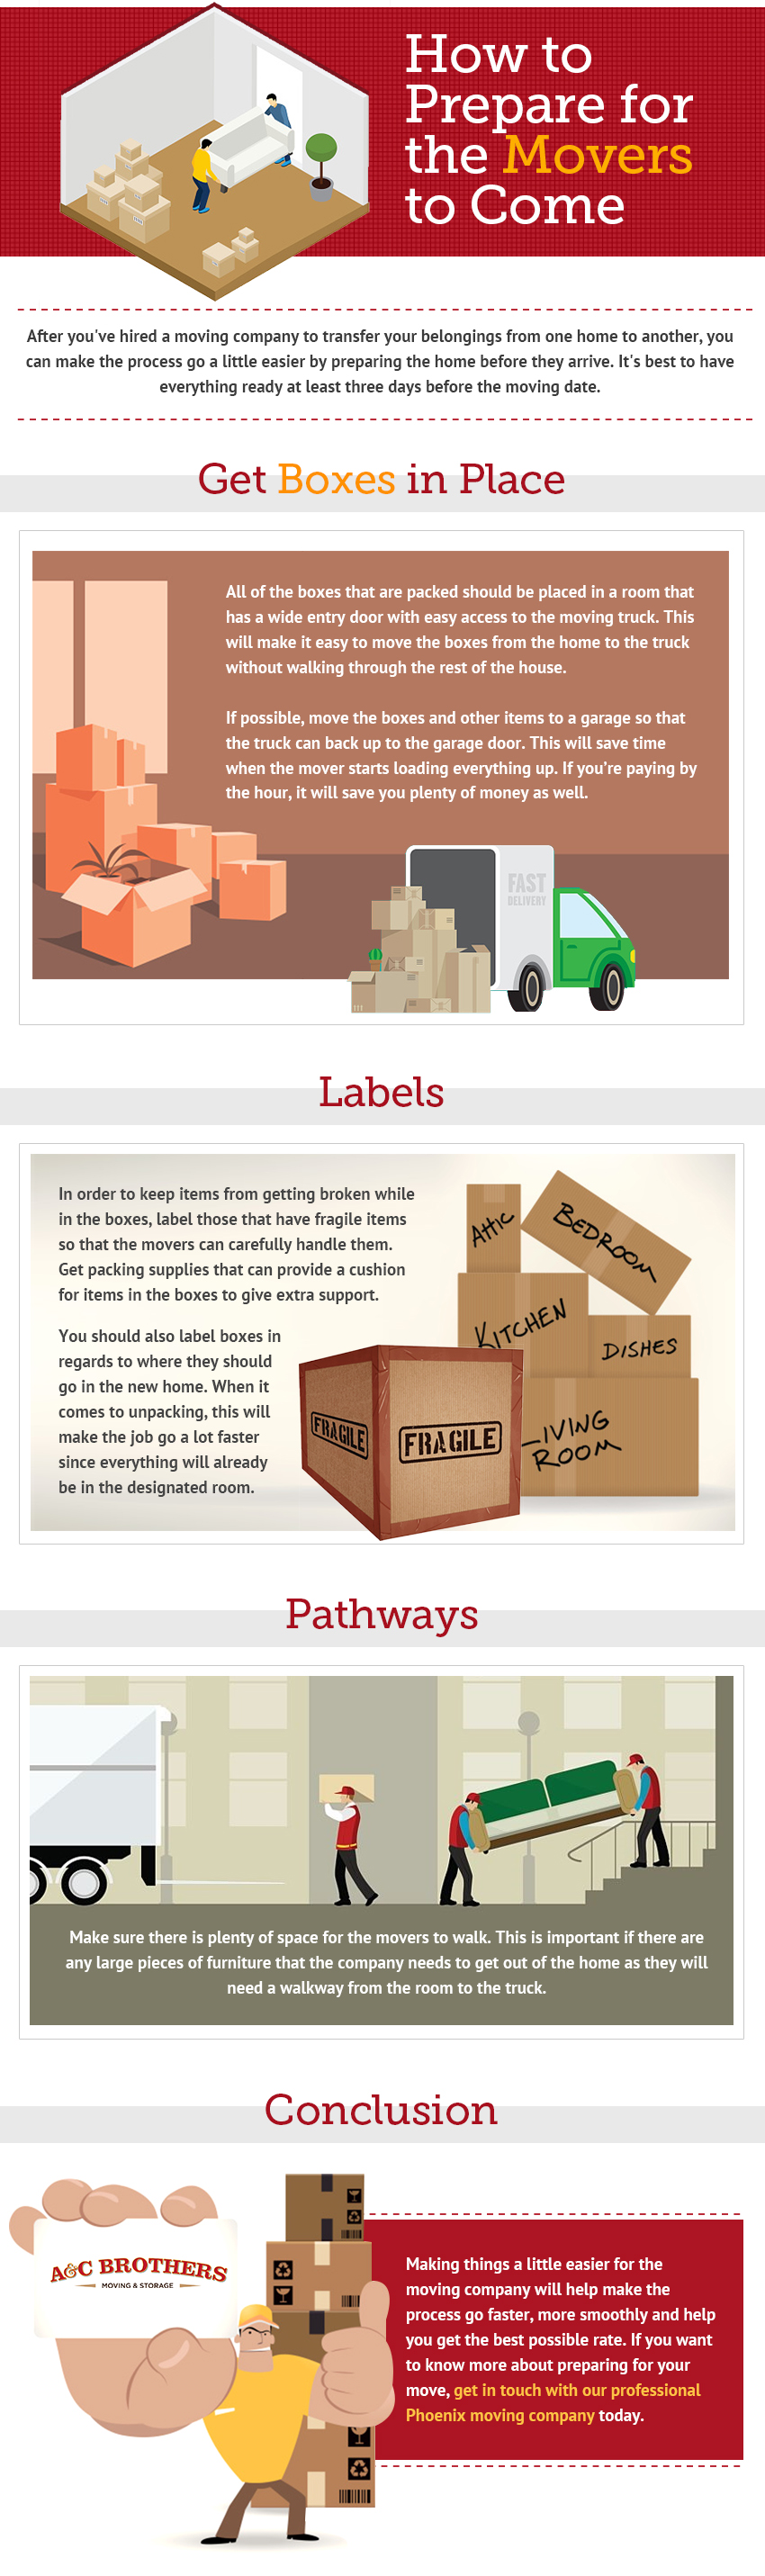 3 Simple Steps To Prepare Your Home For Movers Infographics Latest Posts  Heating System Infographic